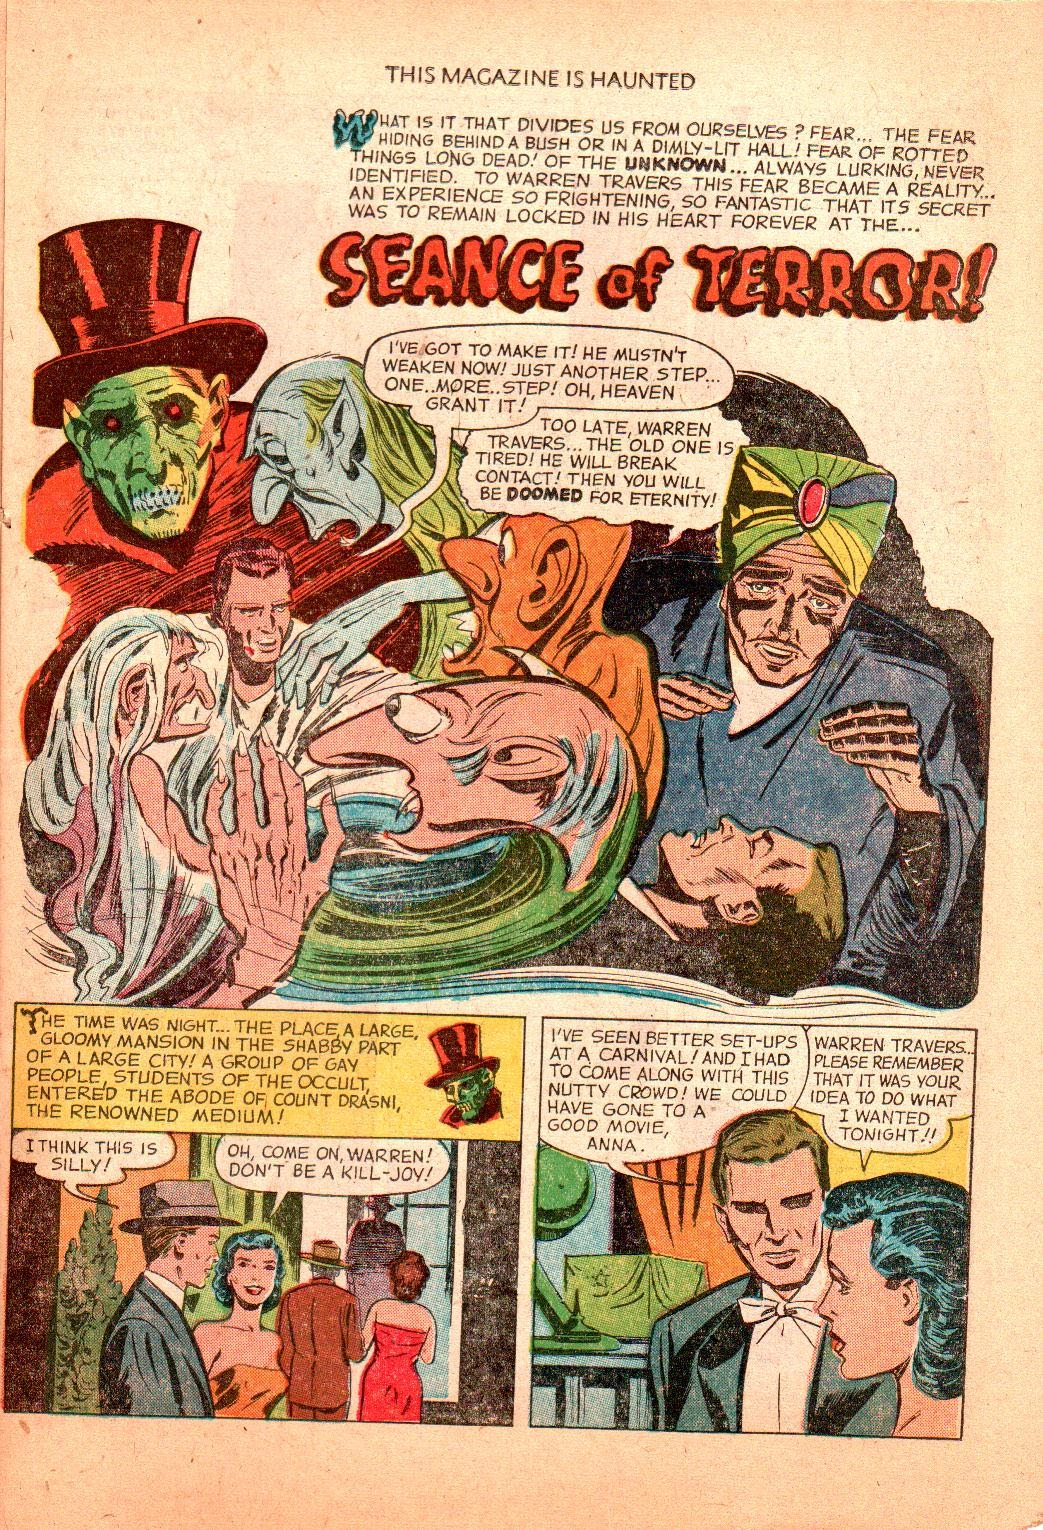 Read online This Magazine Is Haunted comic -  Issue #4 - 15